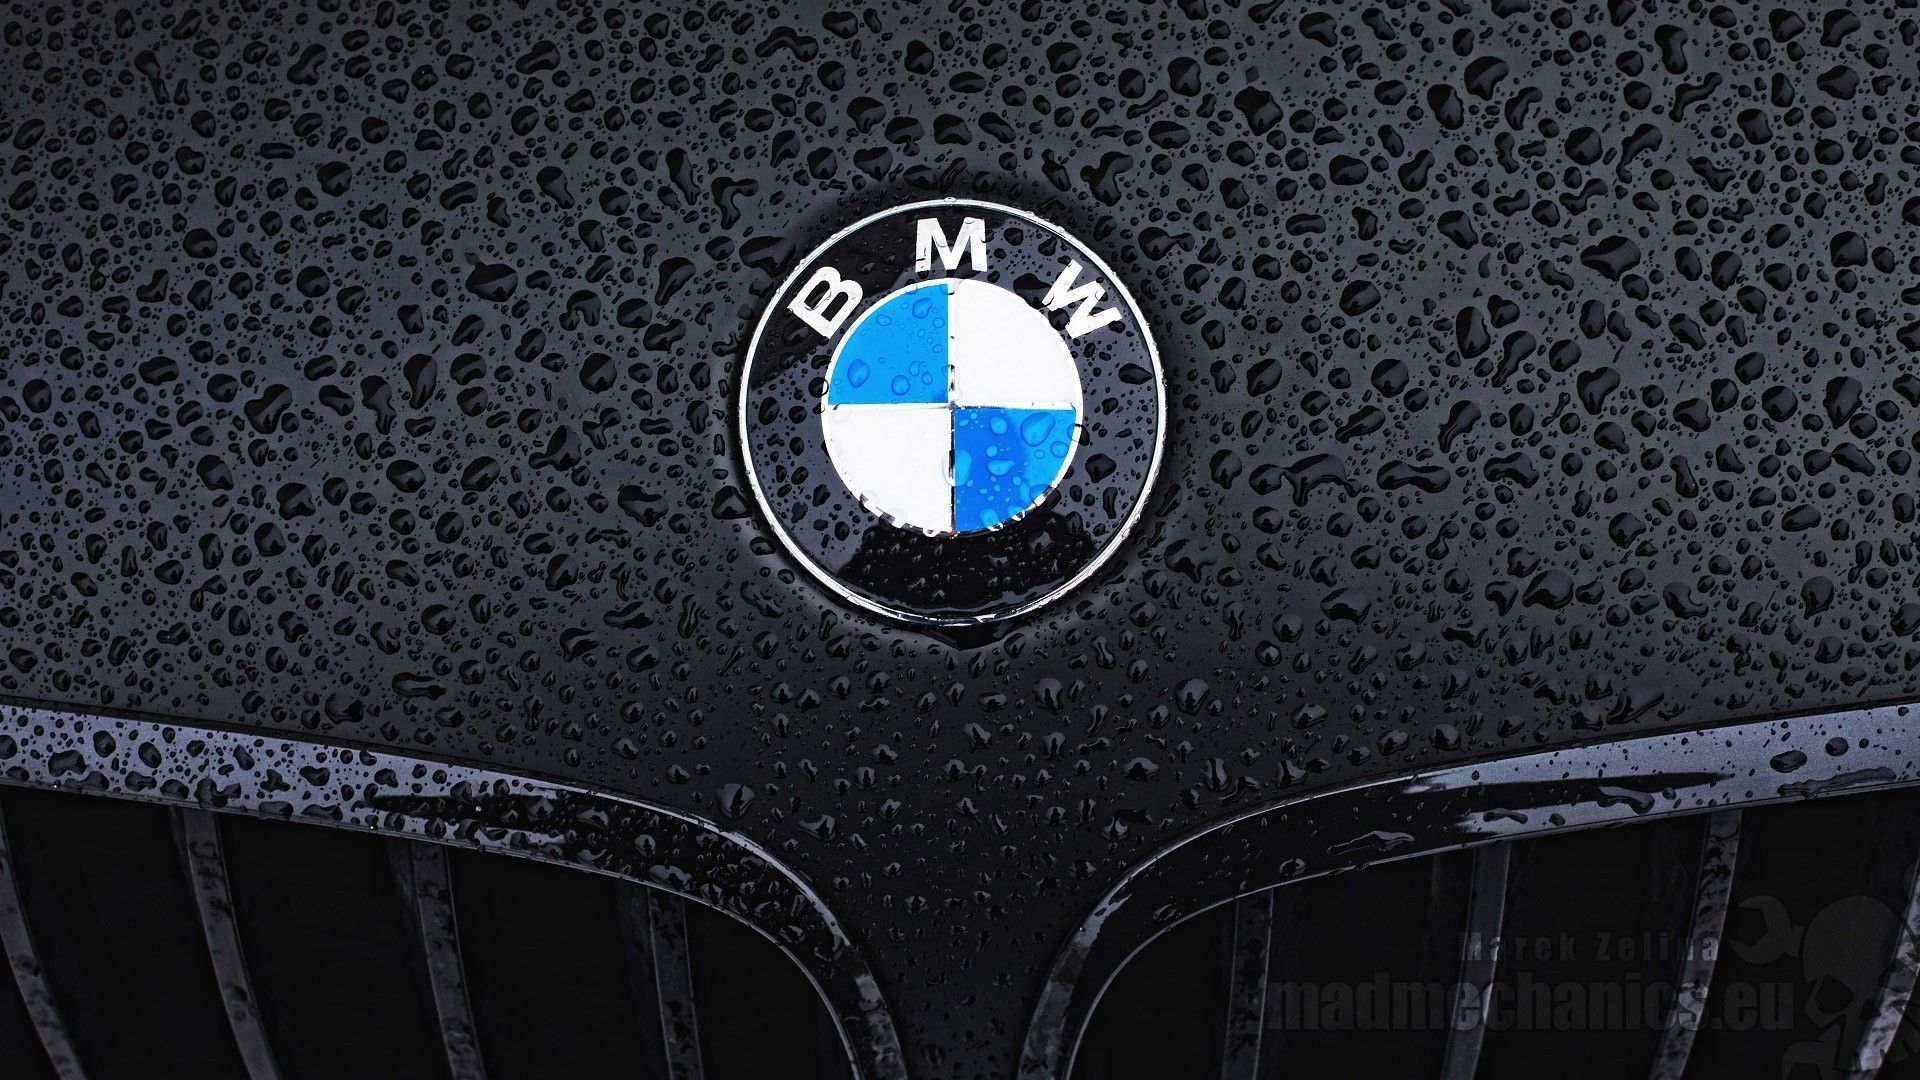 Bmw M Logo Wallpapers Wallpaper Cave All Wallpapers Pinterest